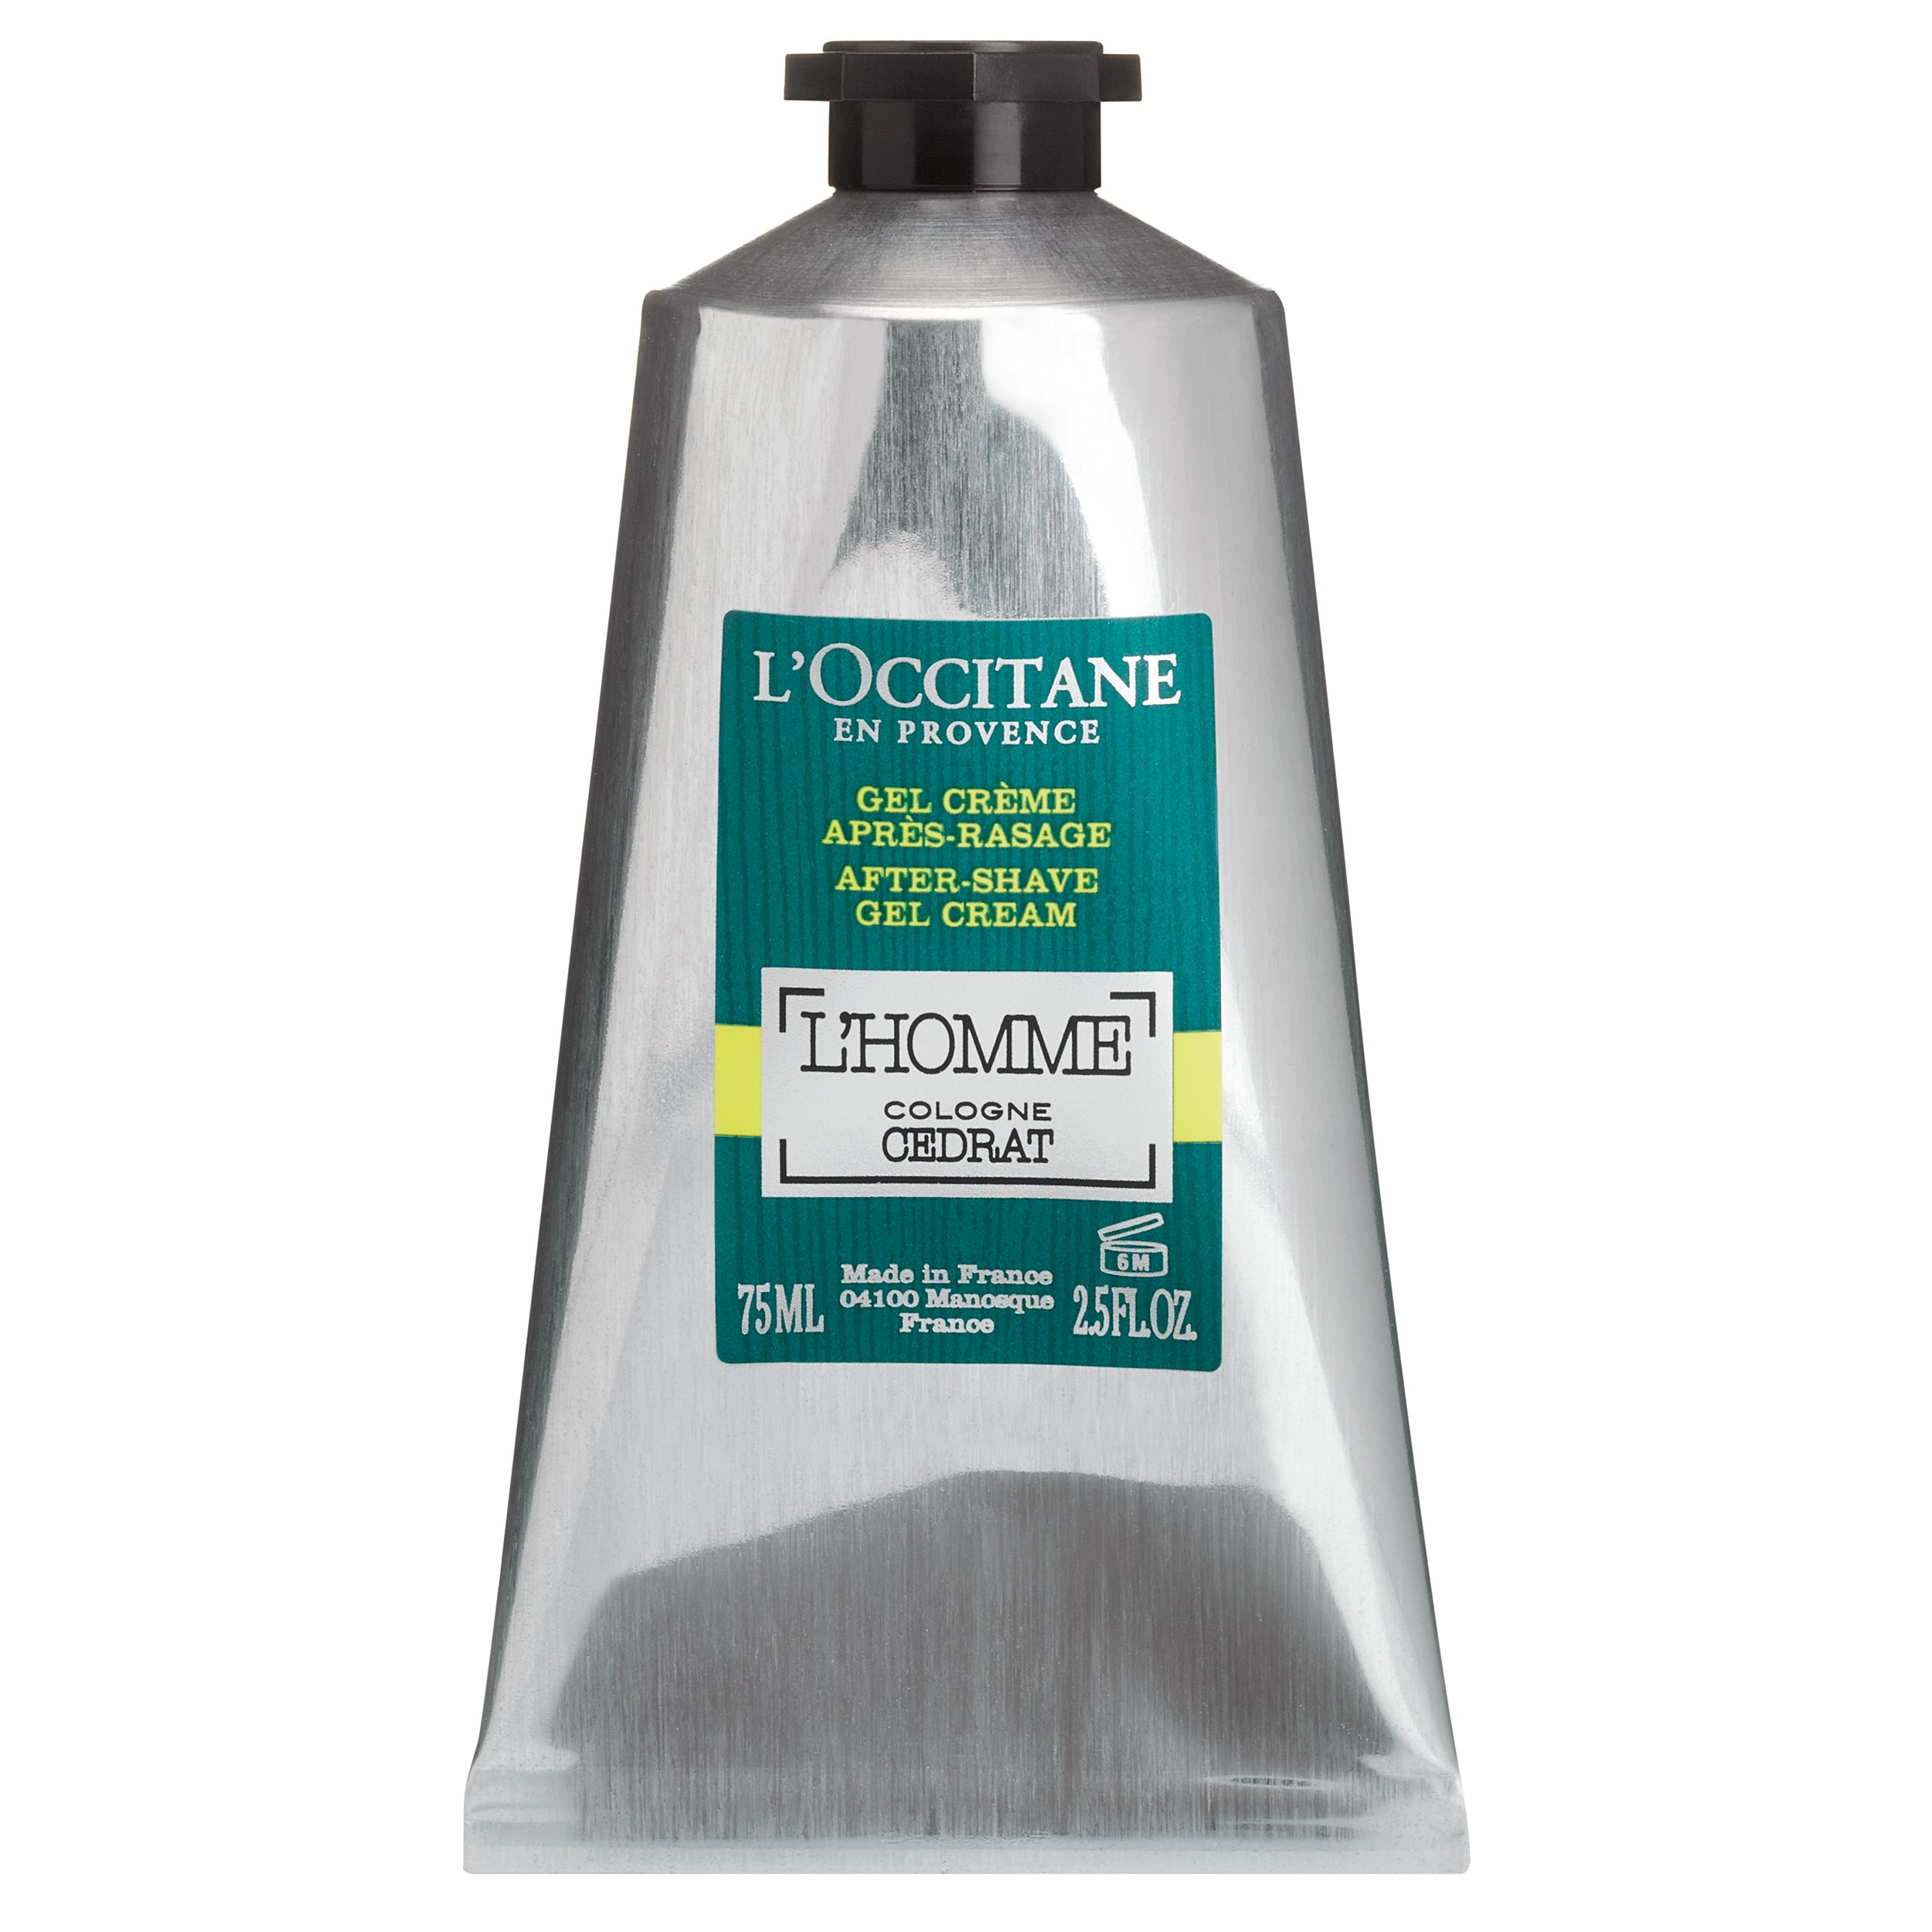 L'Occitane Zesty & Aquatic L'homme Cologne Cedrat Gel-Cream After-shave, 2.5 Fl. oz.